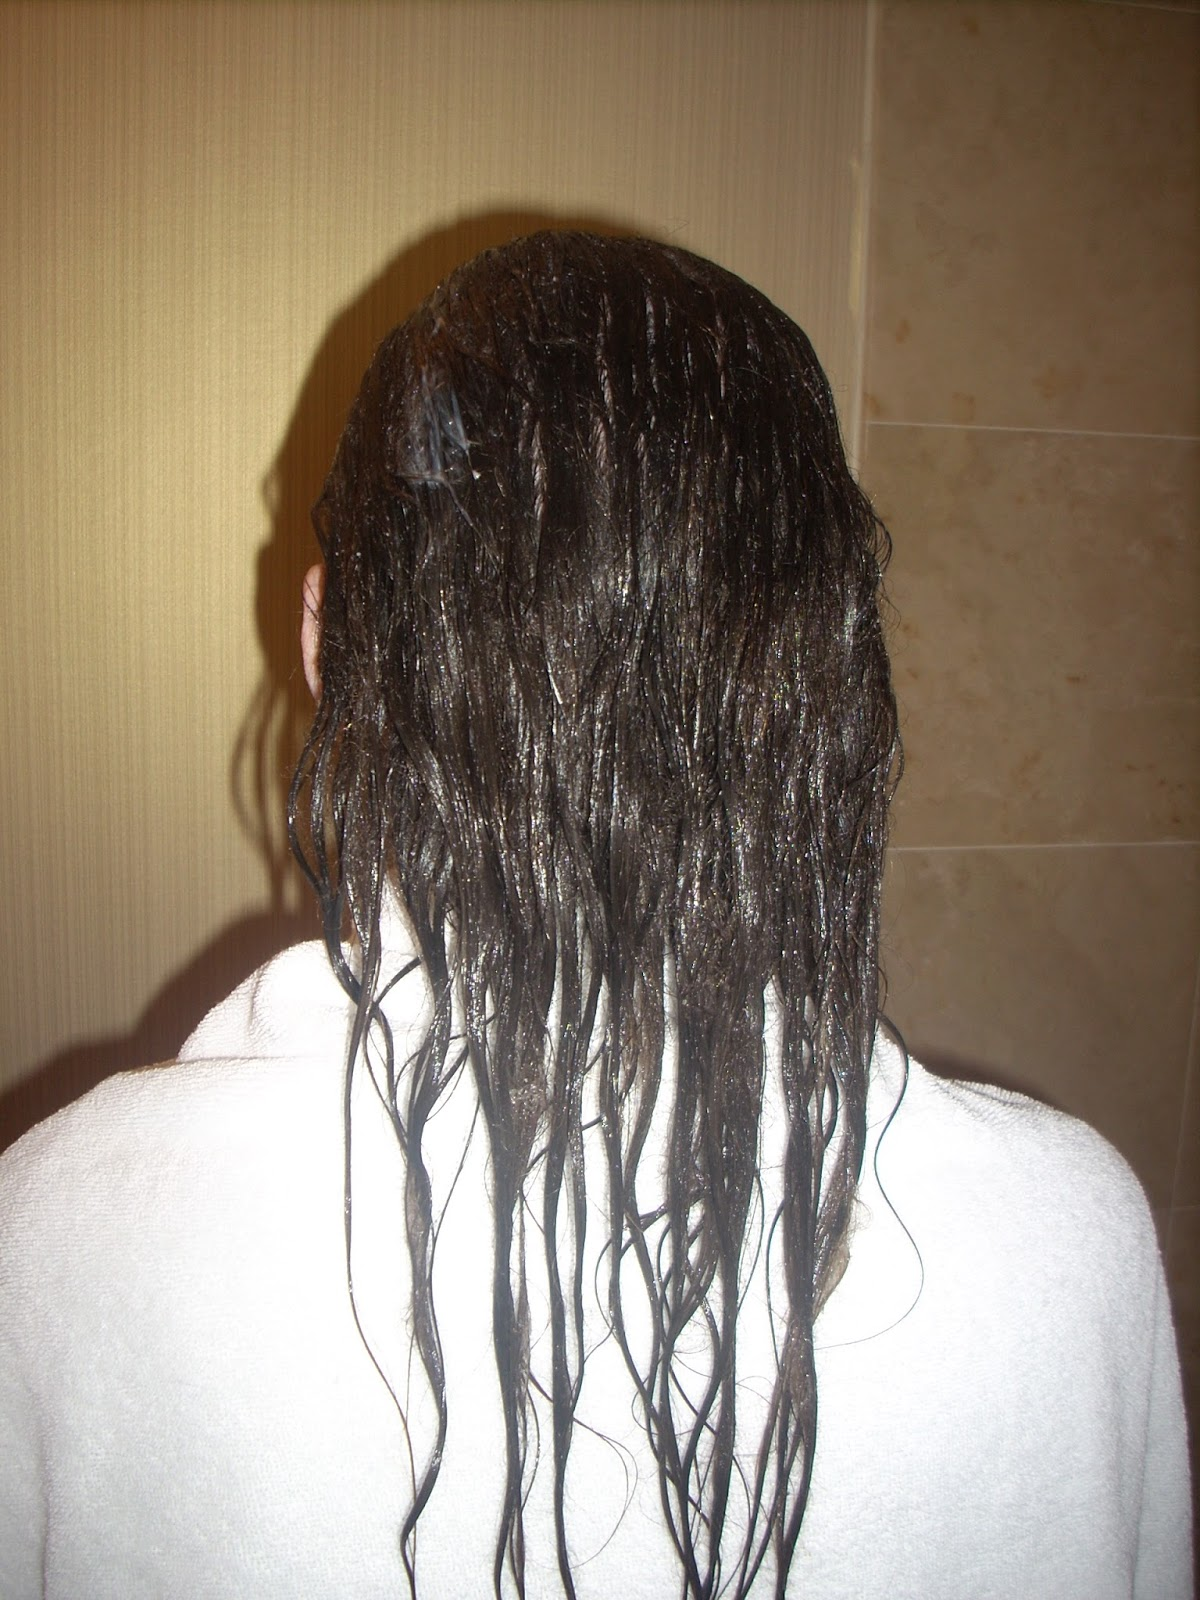 Matted Human Hair How To Comb Out Tangles And Matted Hair